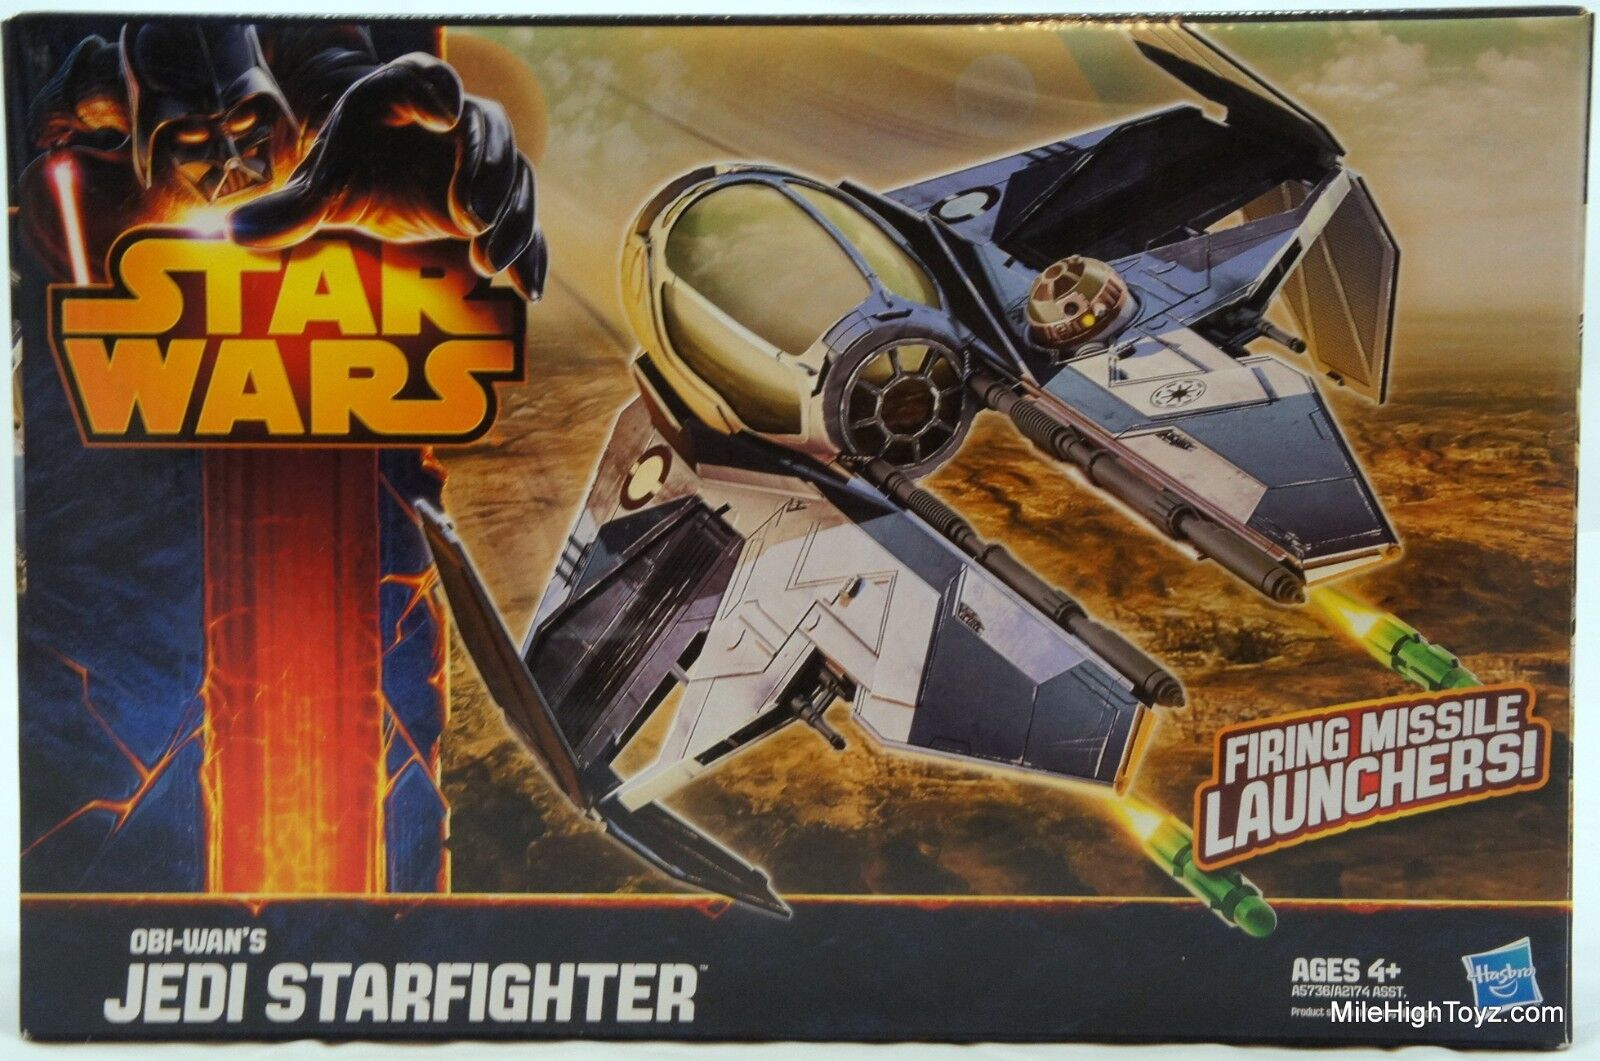 Star Wars rossoS Obi-Wan Jedi Starfighter Vehicle Class II with Missile Launcher